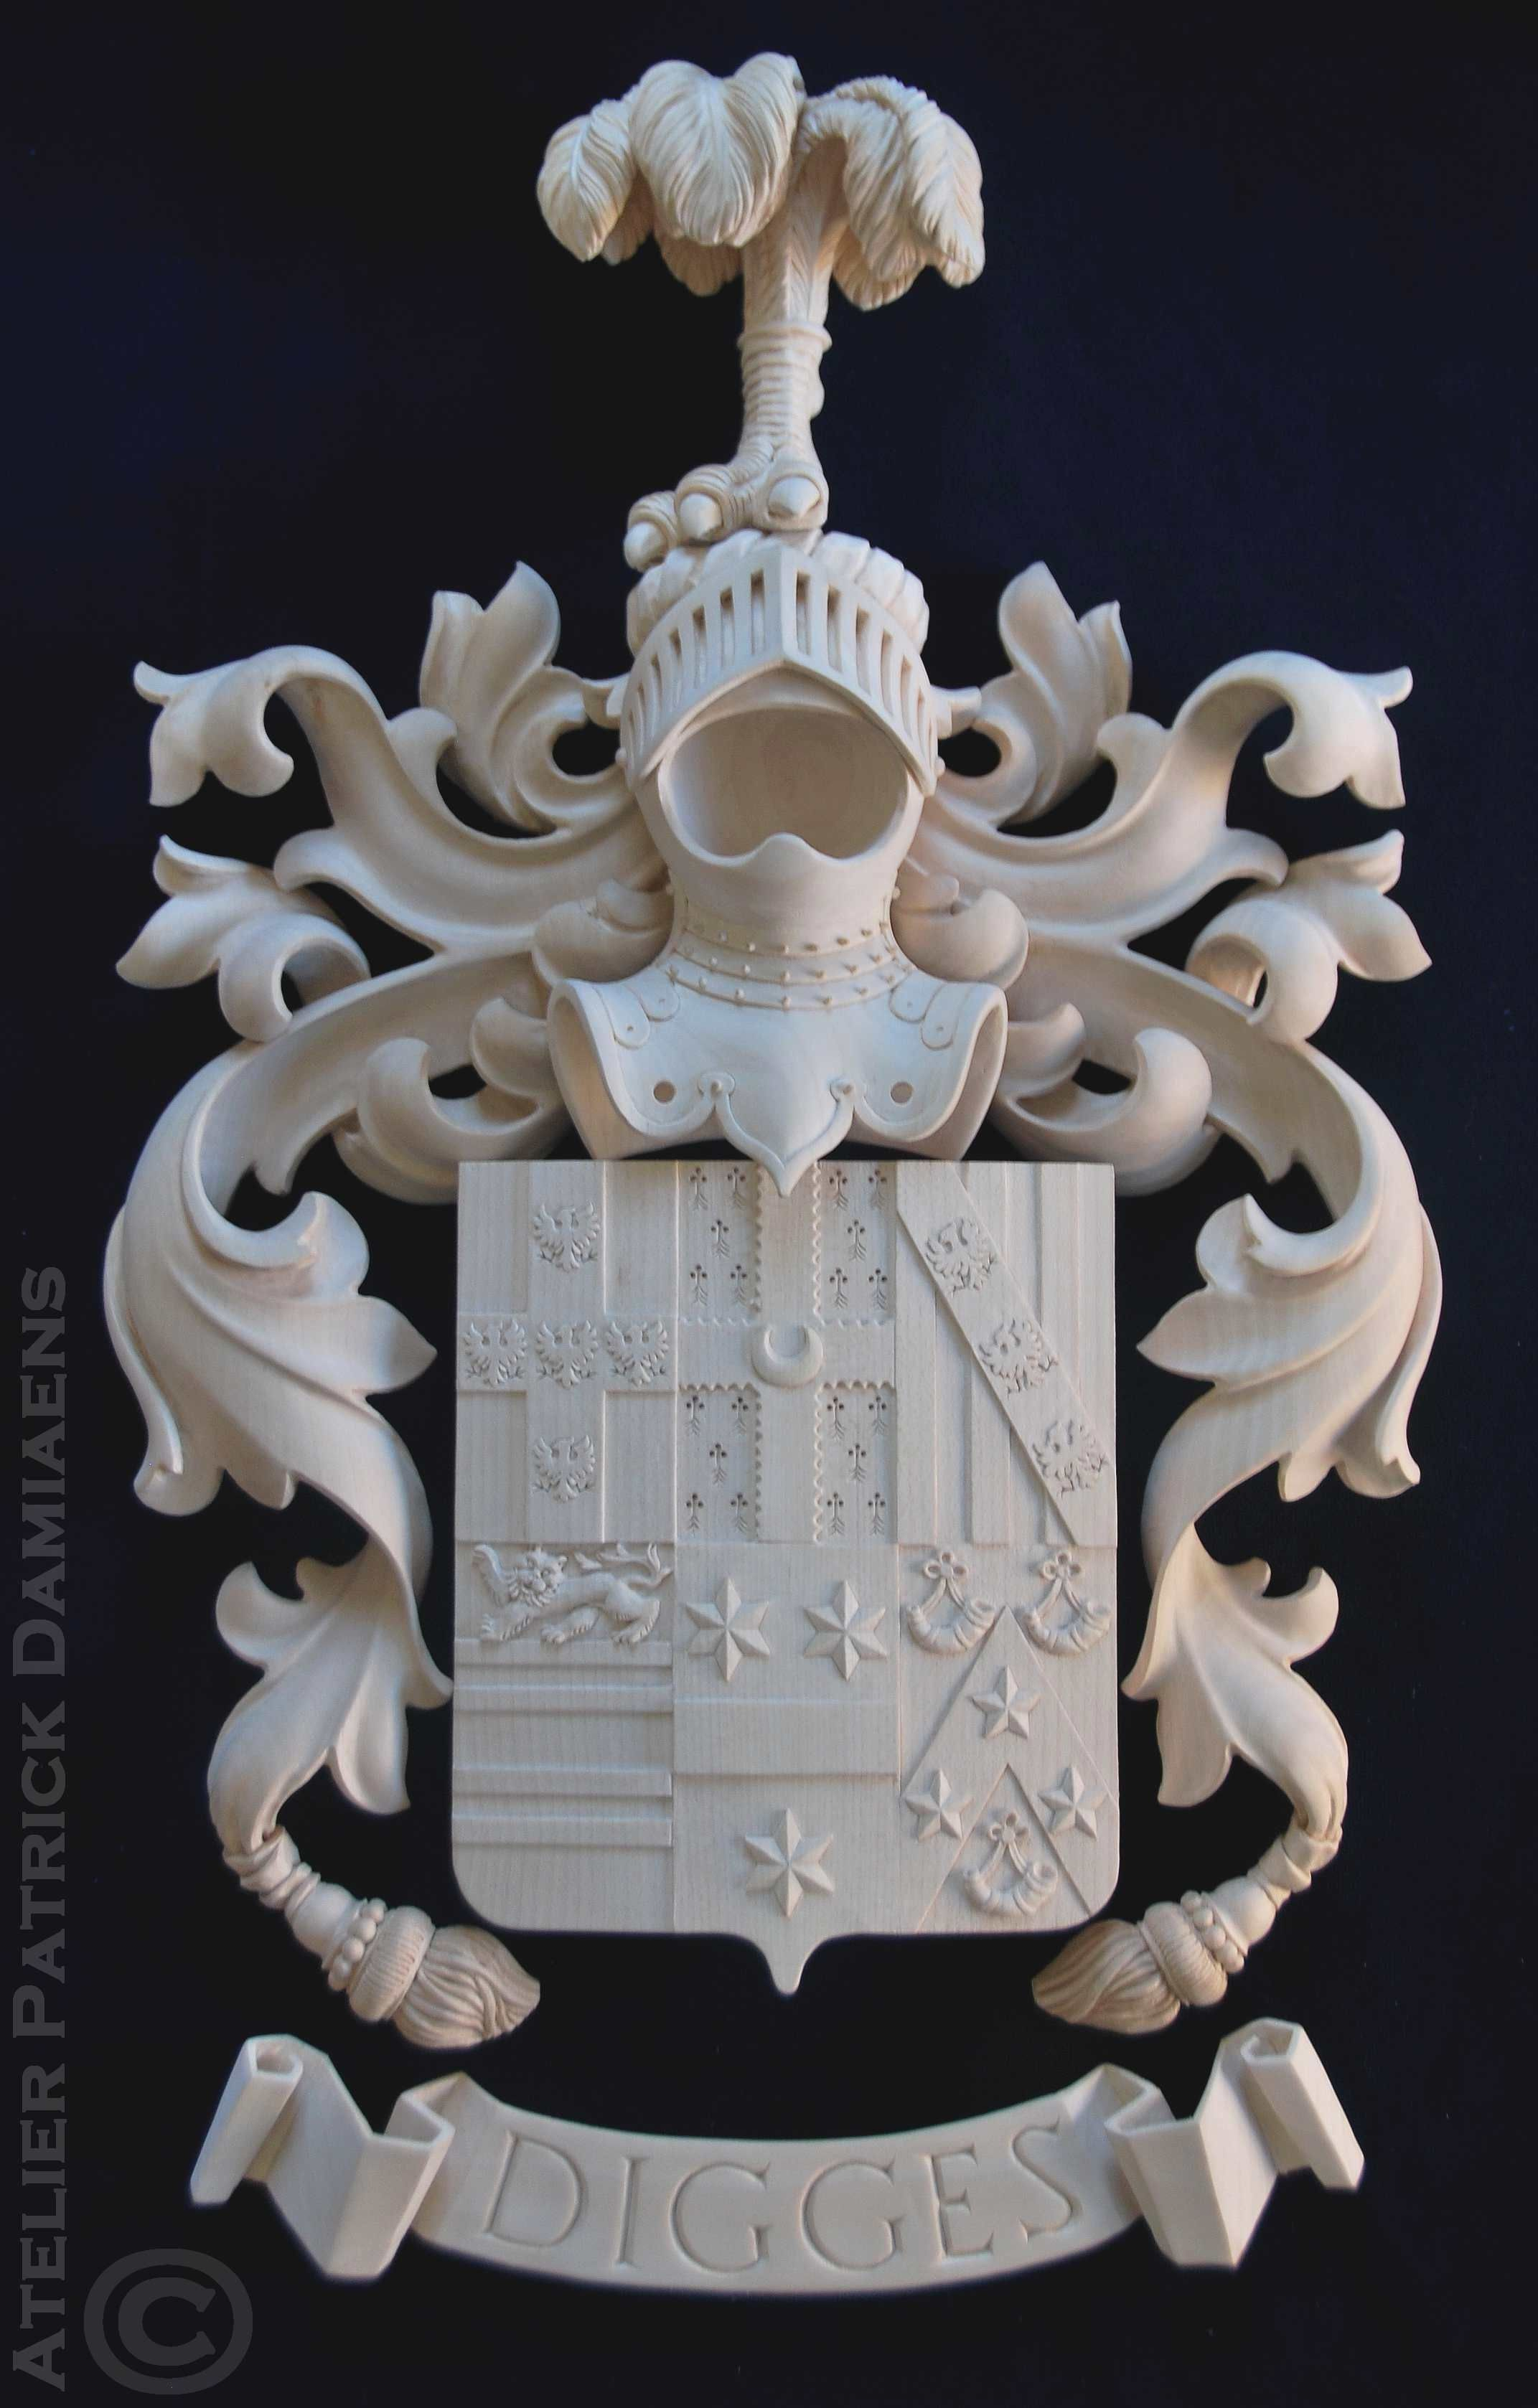 Digges family coat of arms family coat of arms carved in wood